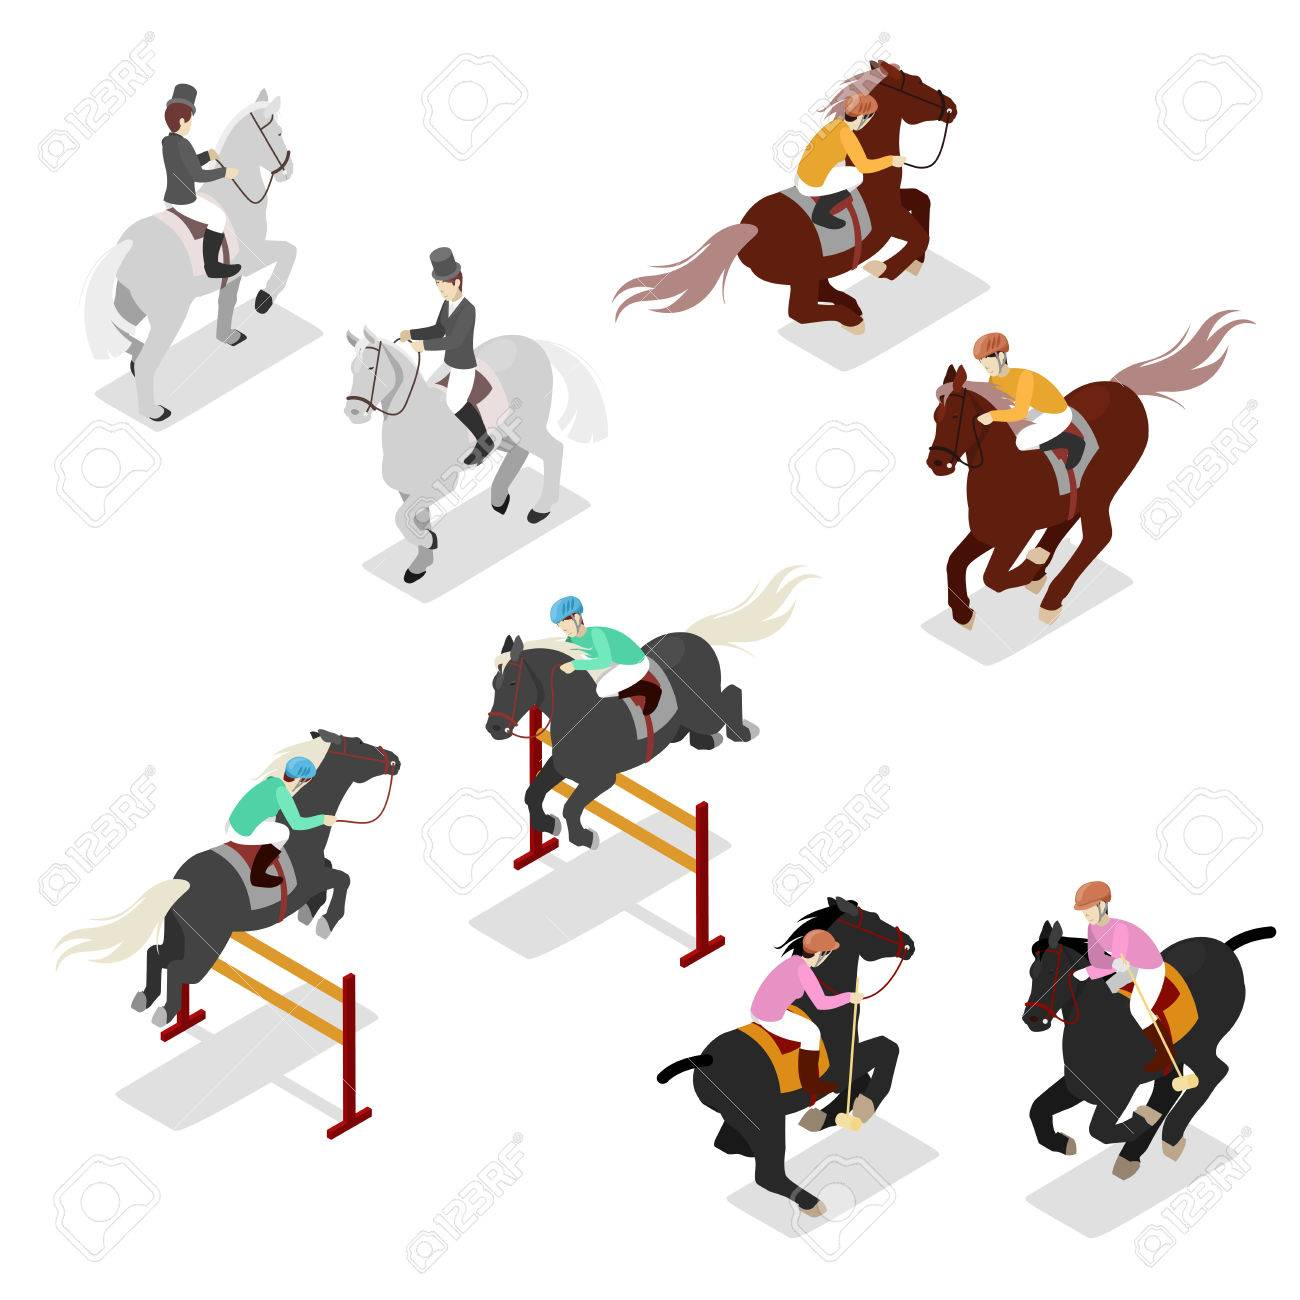 Equestrian Sports - Polo, Dressage, Contest. Man on Horse. Isometric vector flat 3d illustration - 75534375